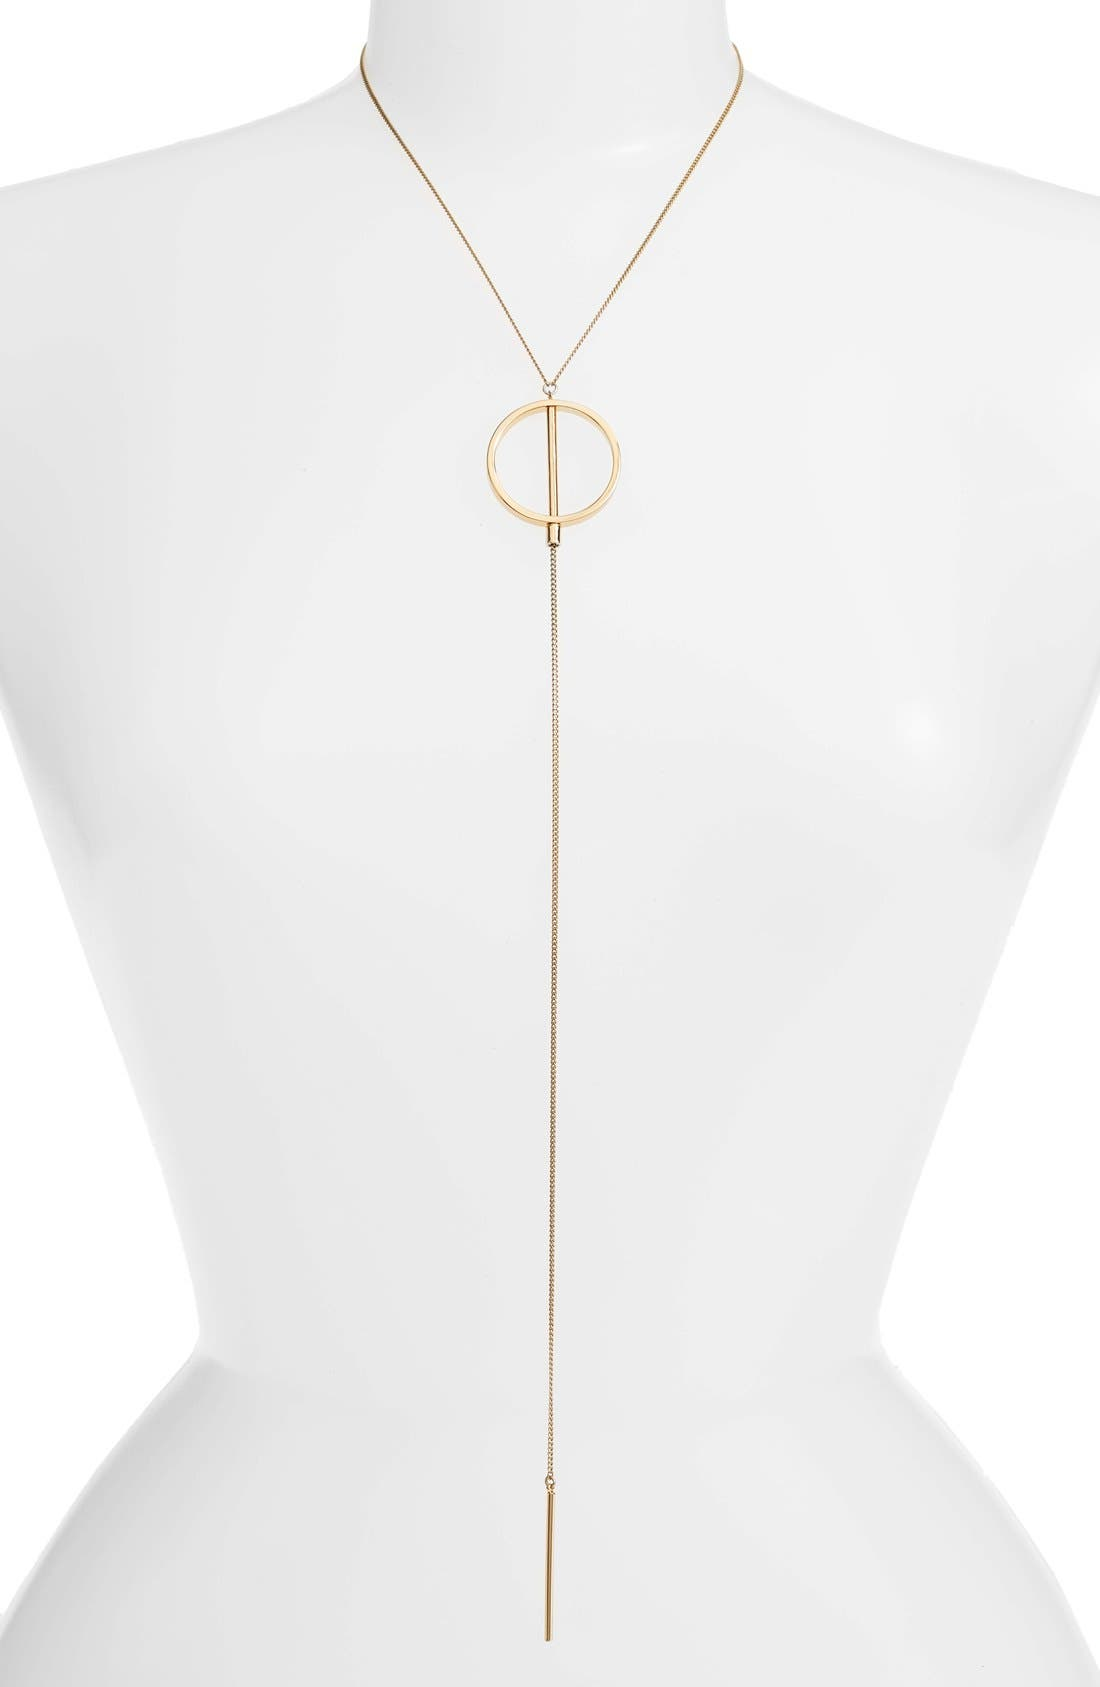 Rhine Lariat Necklace,                             Alternate thumbnail 4, color,                             GOLD